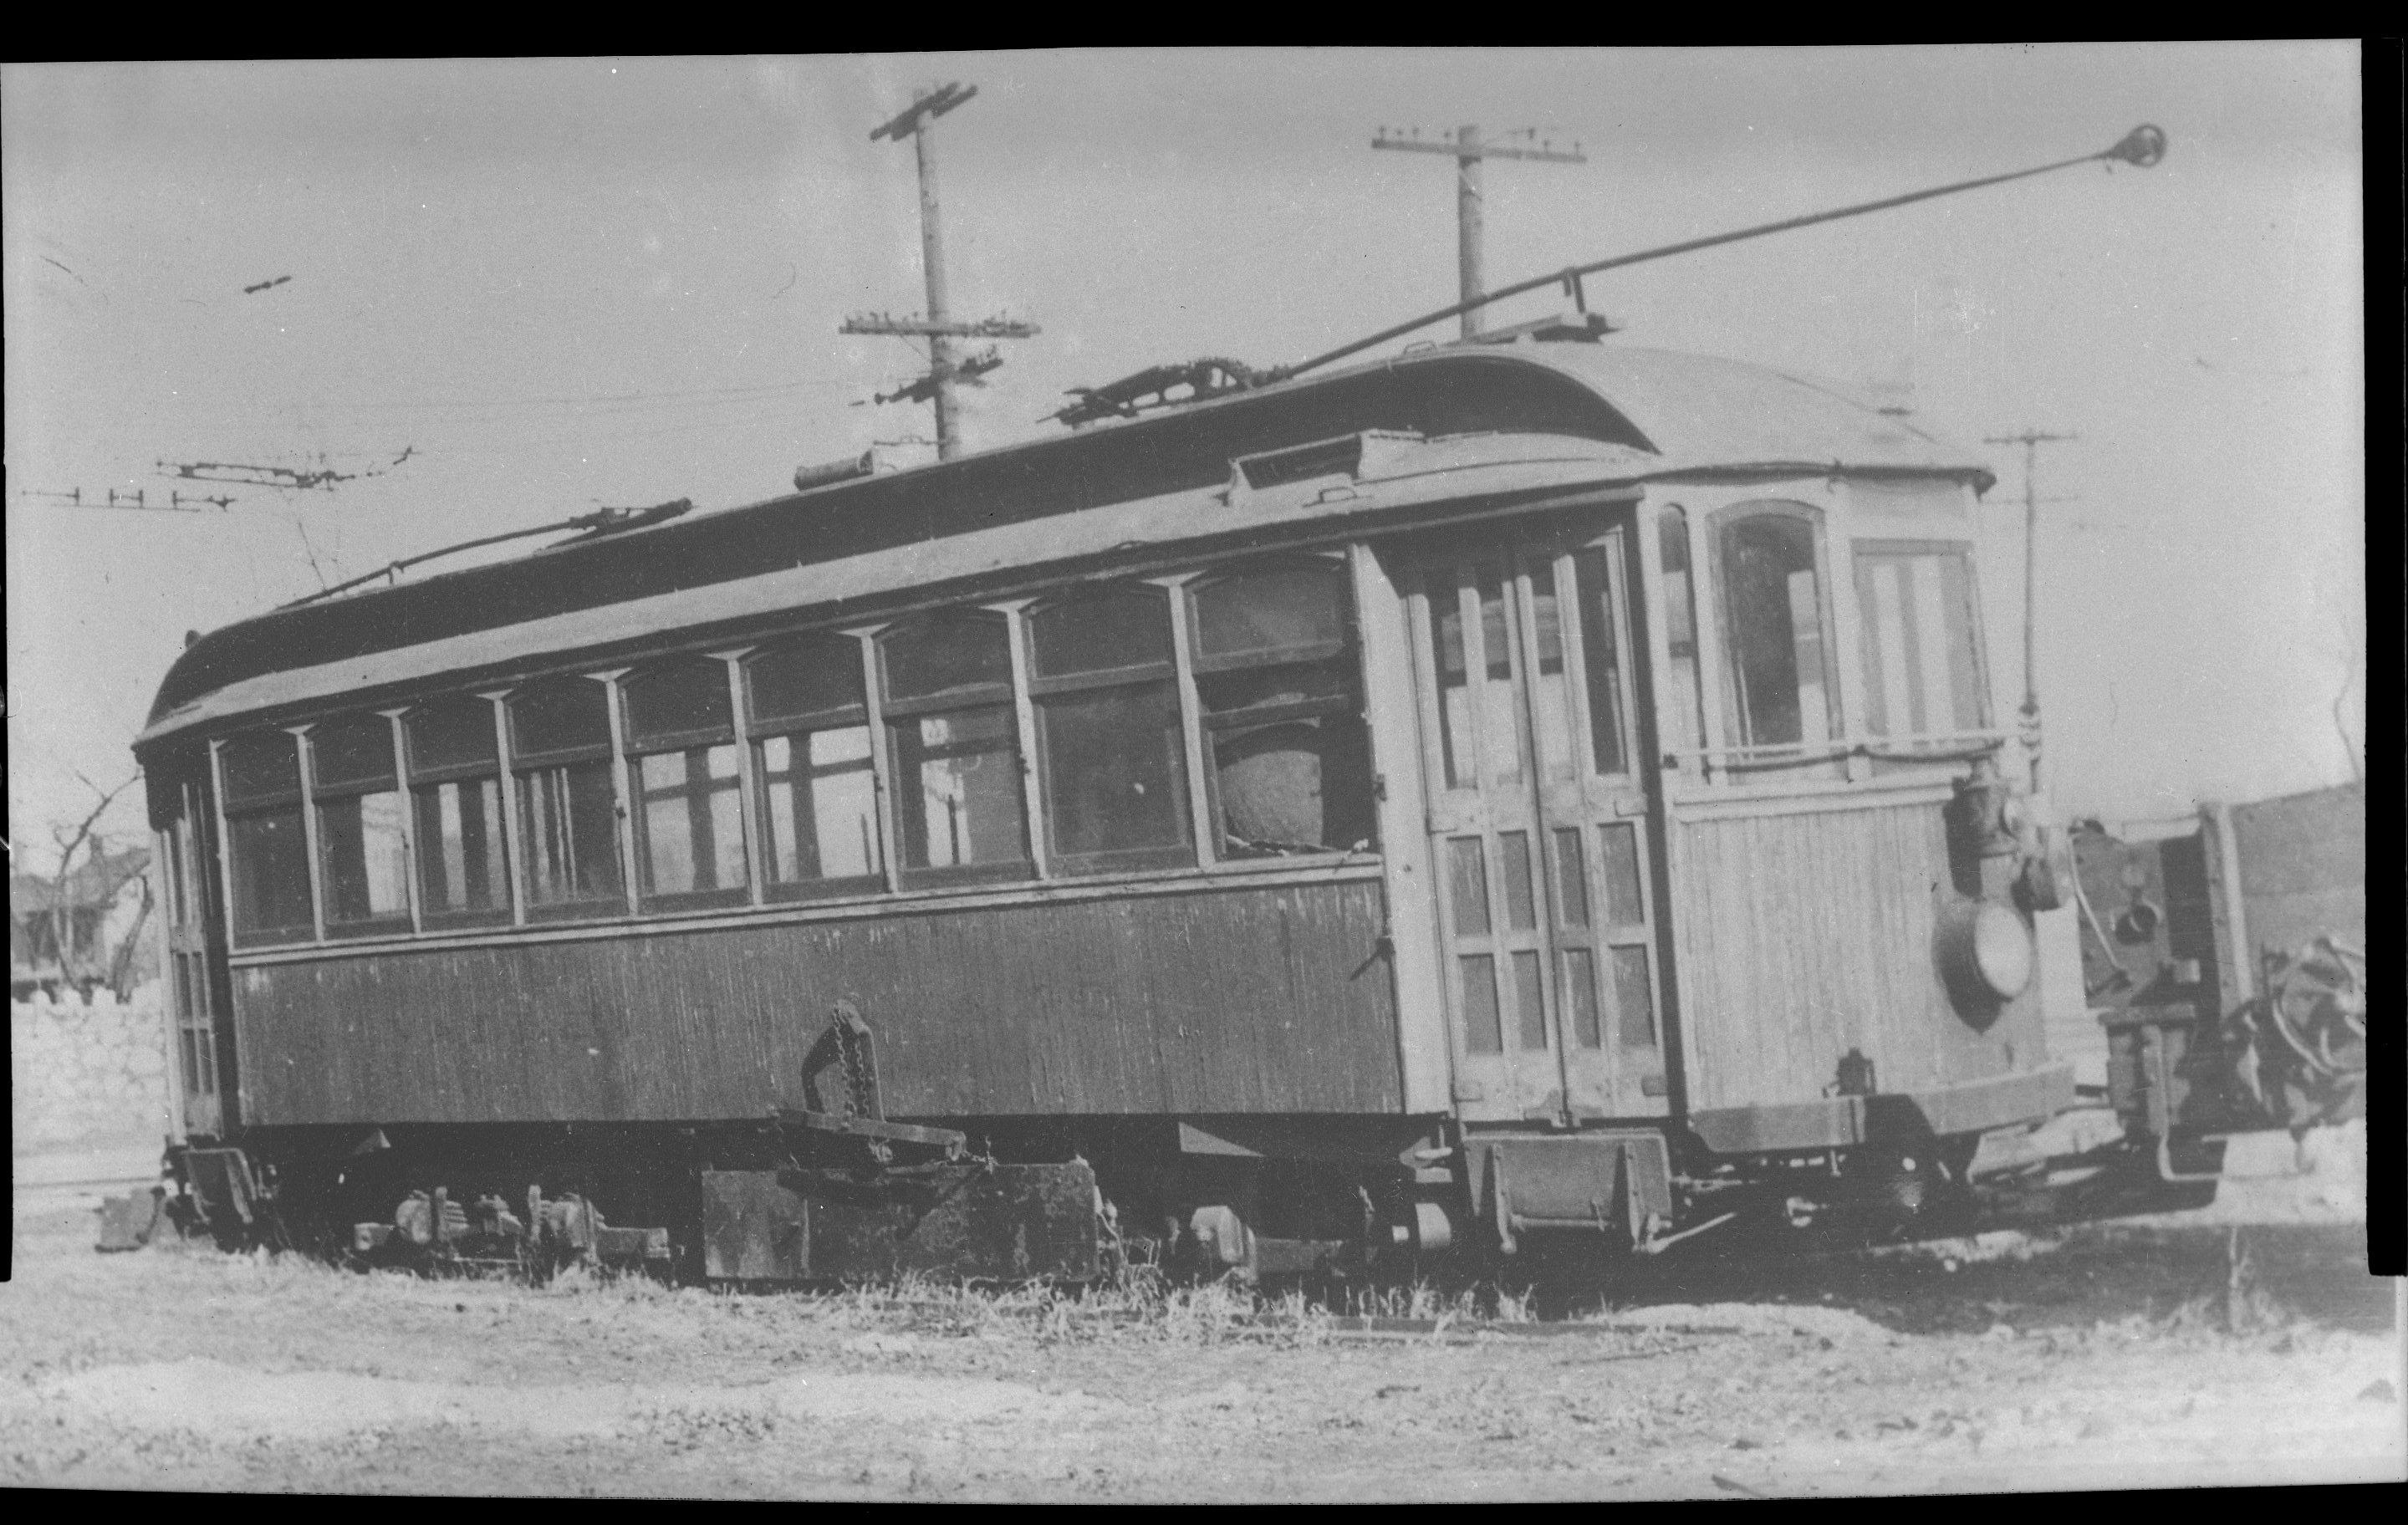 Valley Railways trolley at West End Junction (Wormleysburg PA). Image taken 1933, this was scanned from a copy negative.